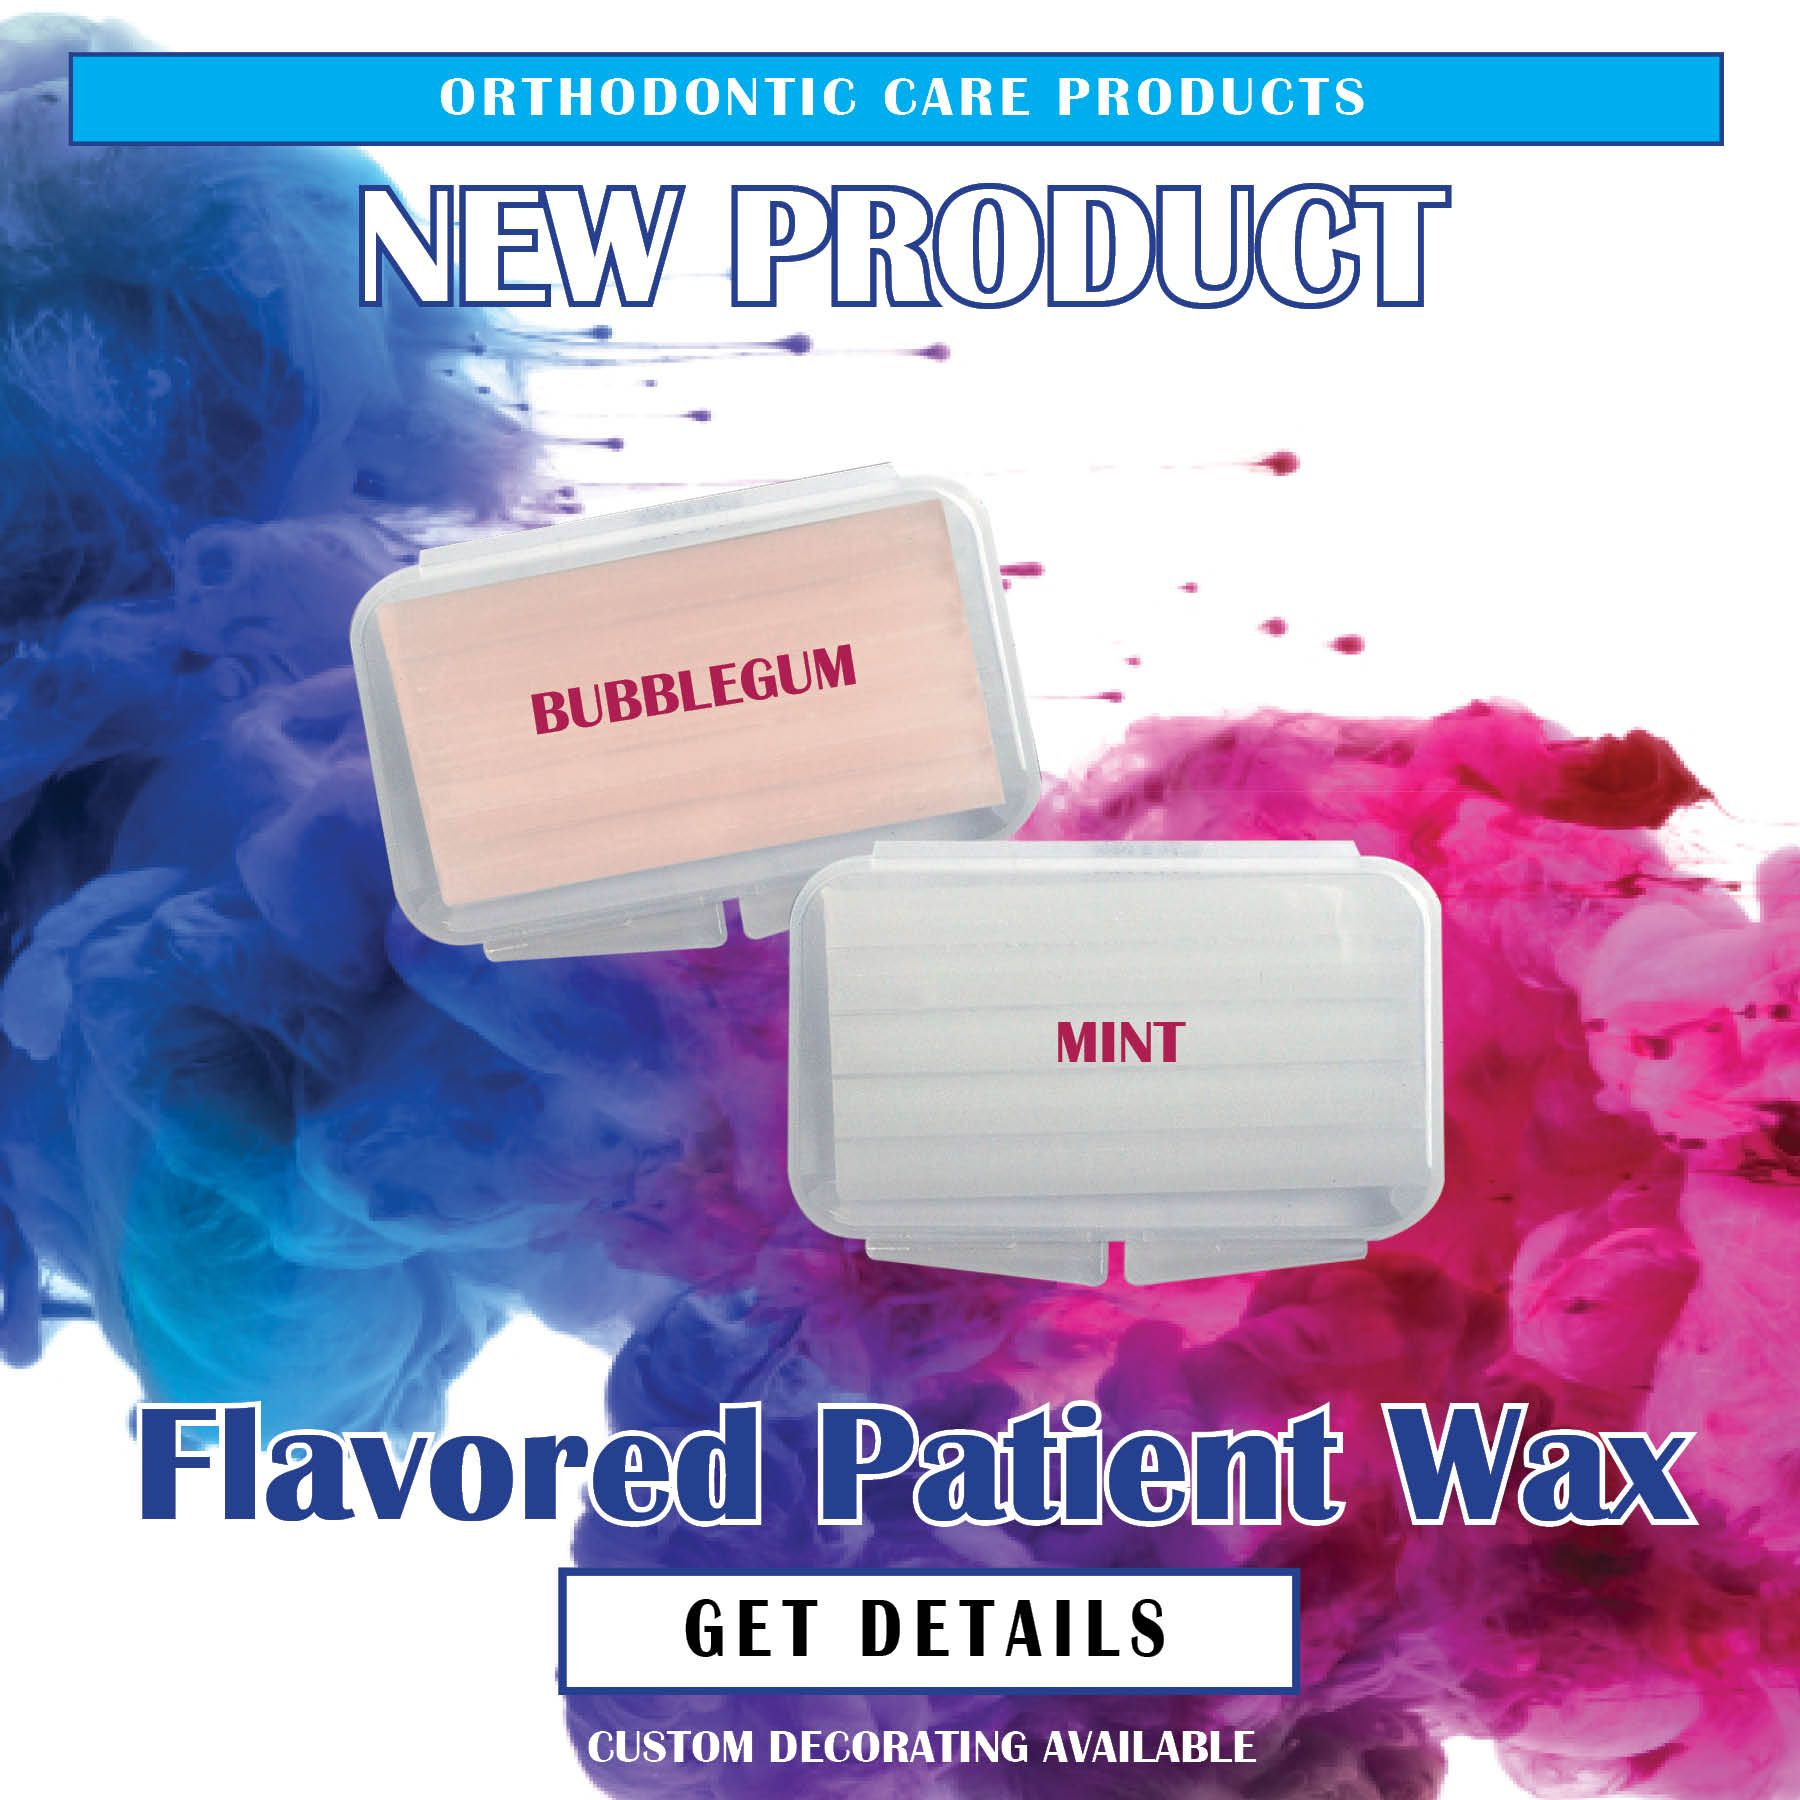 Sick of the boring old patient wax, try freshening up your